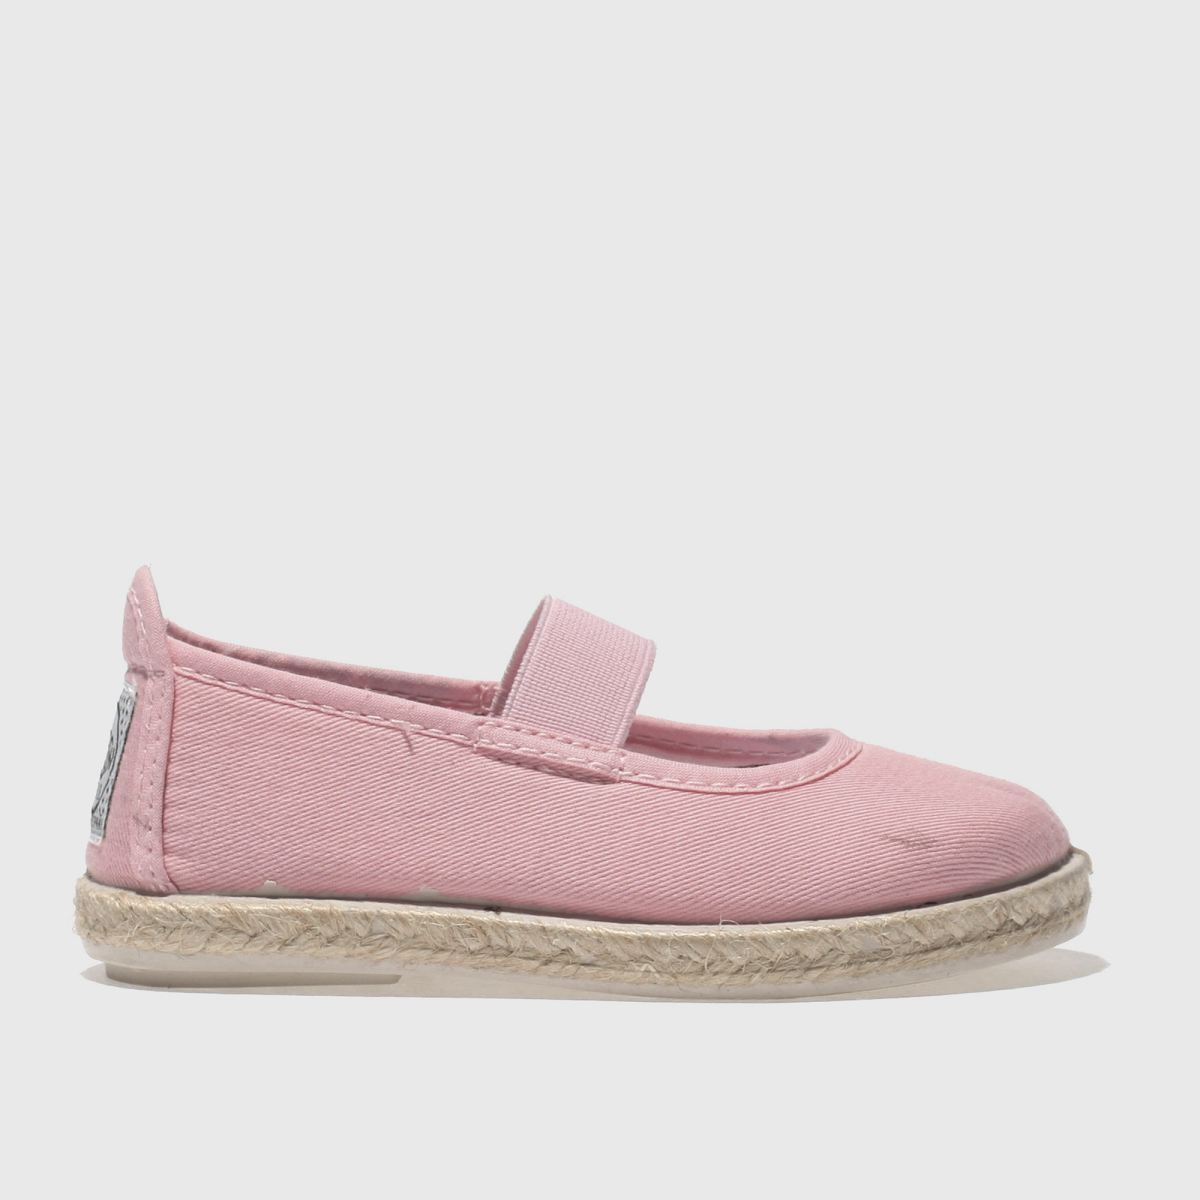 Flossy Flossy Pink Astro Girls Toddler Shoes